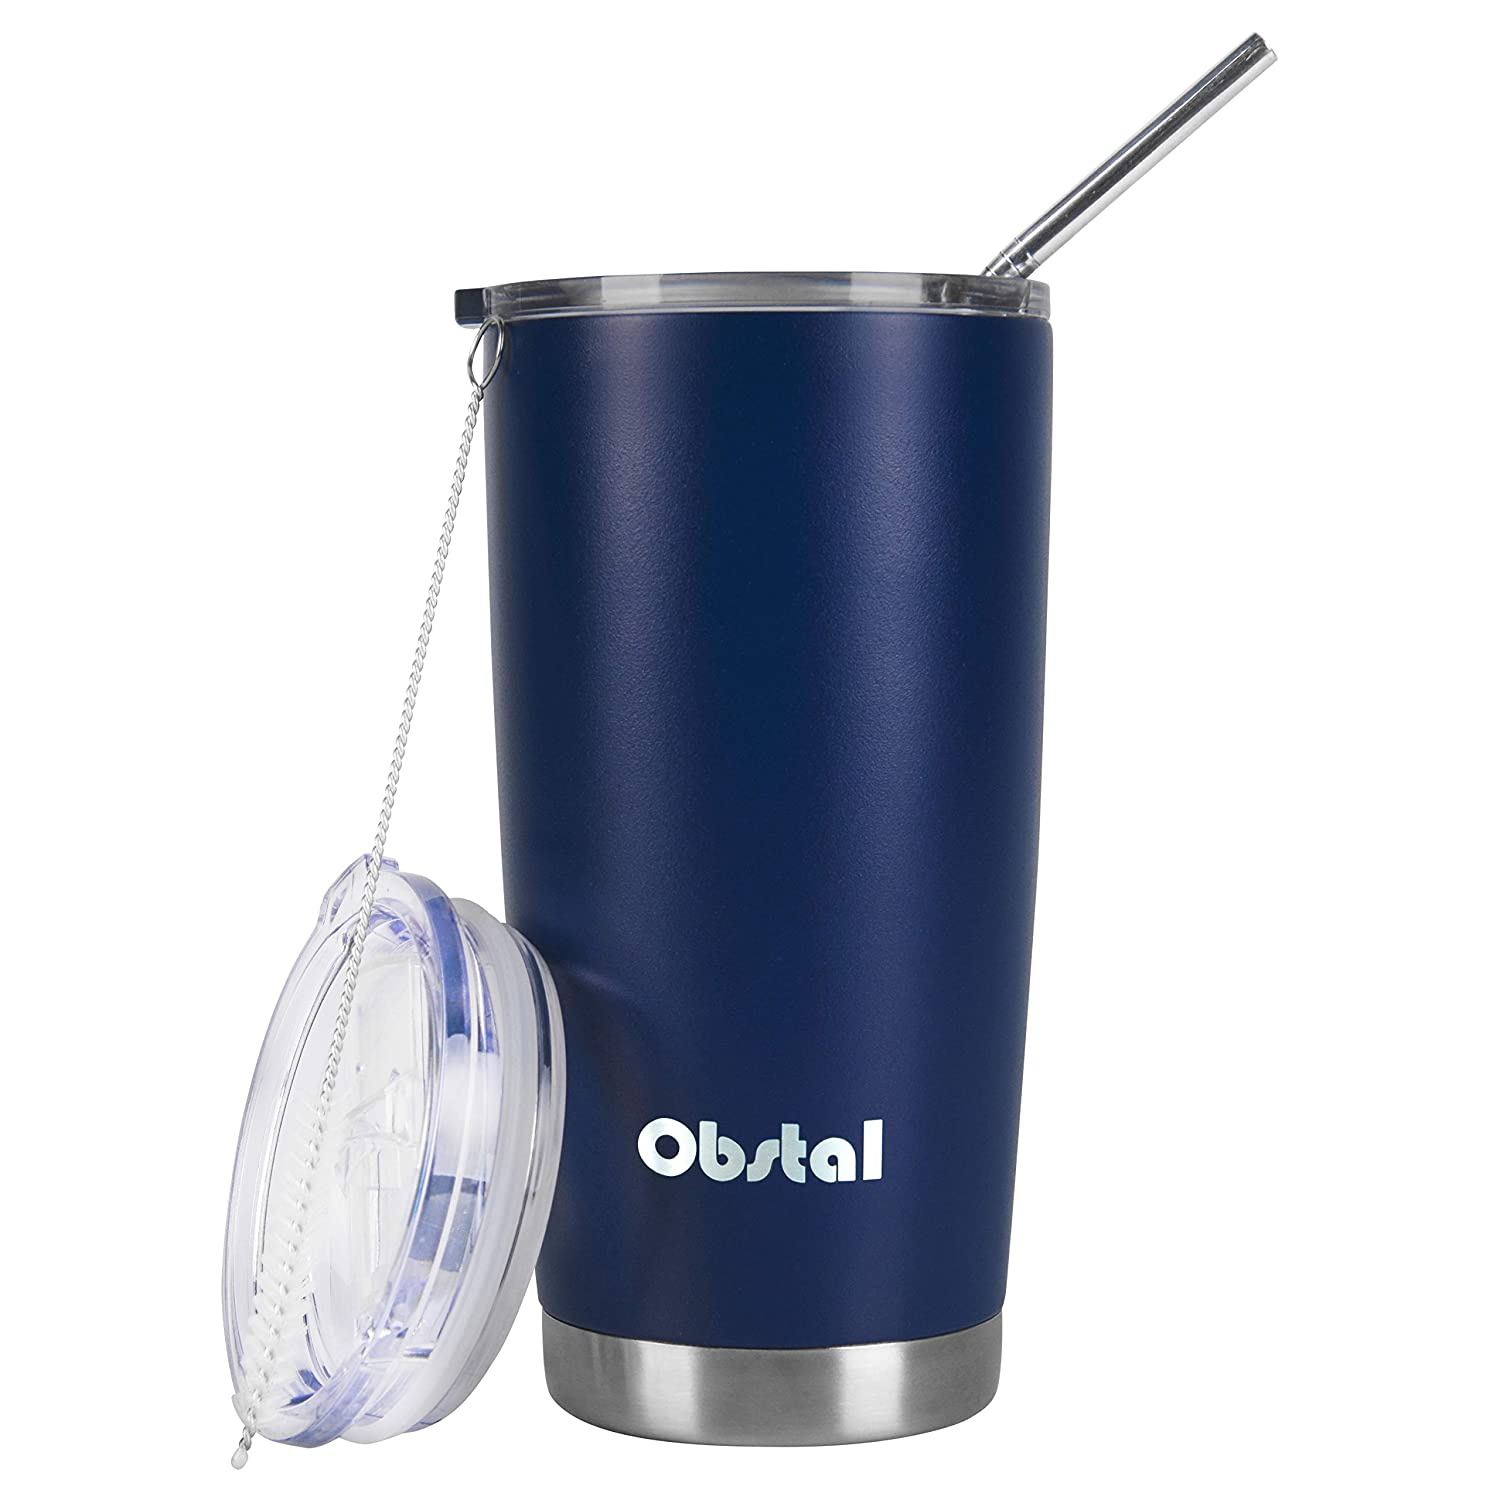 Obstal 20 oz Insulated Coffee Tumbler Stainless Steel Double Wall Vacuum with Stainless Straw, 2 Clear Lids & Cleaning Brush for Office, Navy, Powder Coated